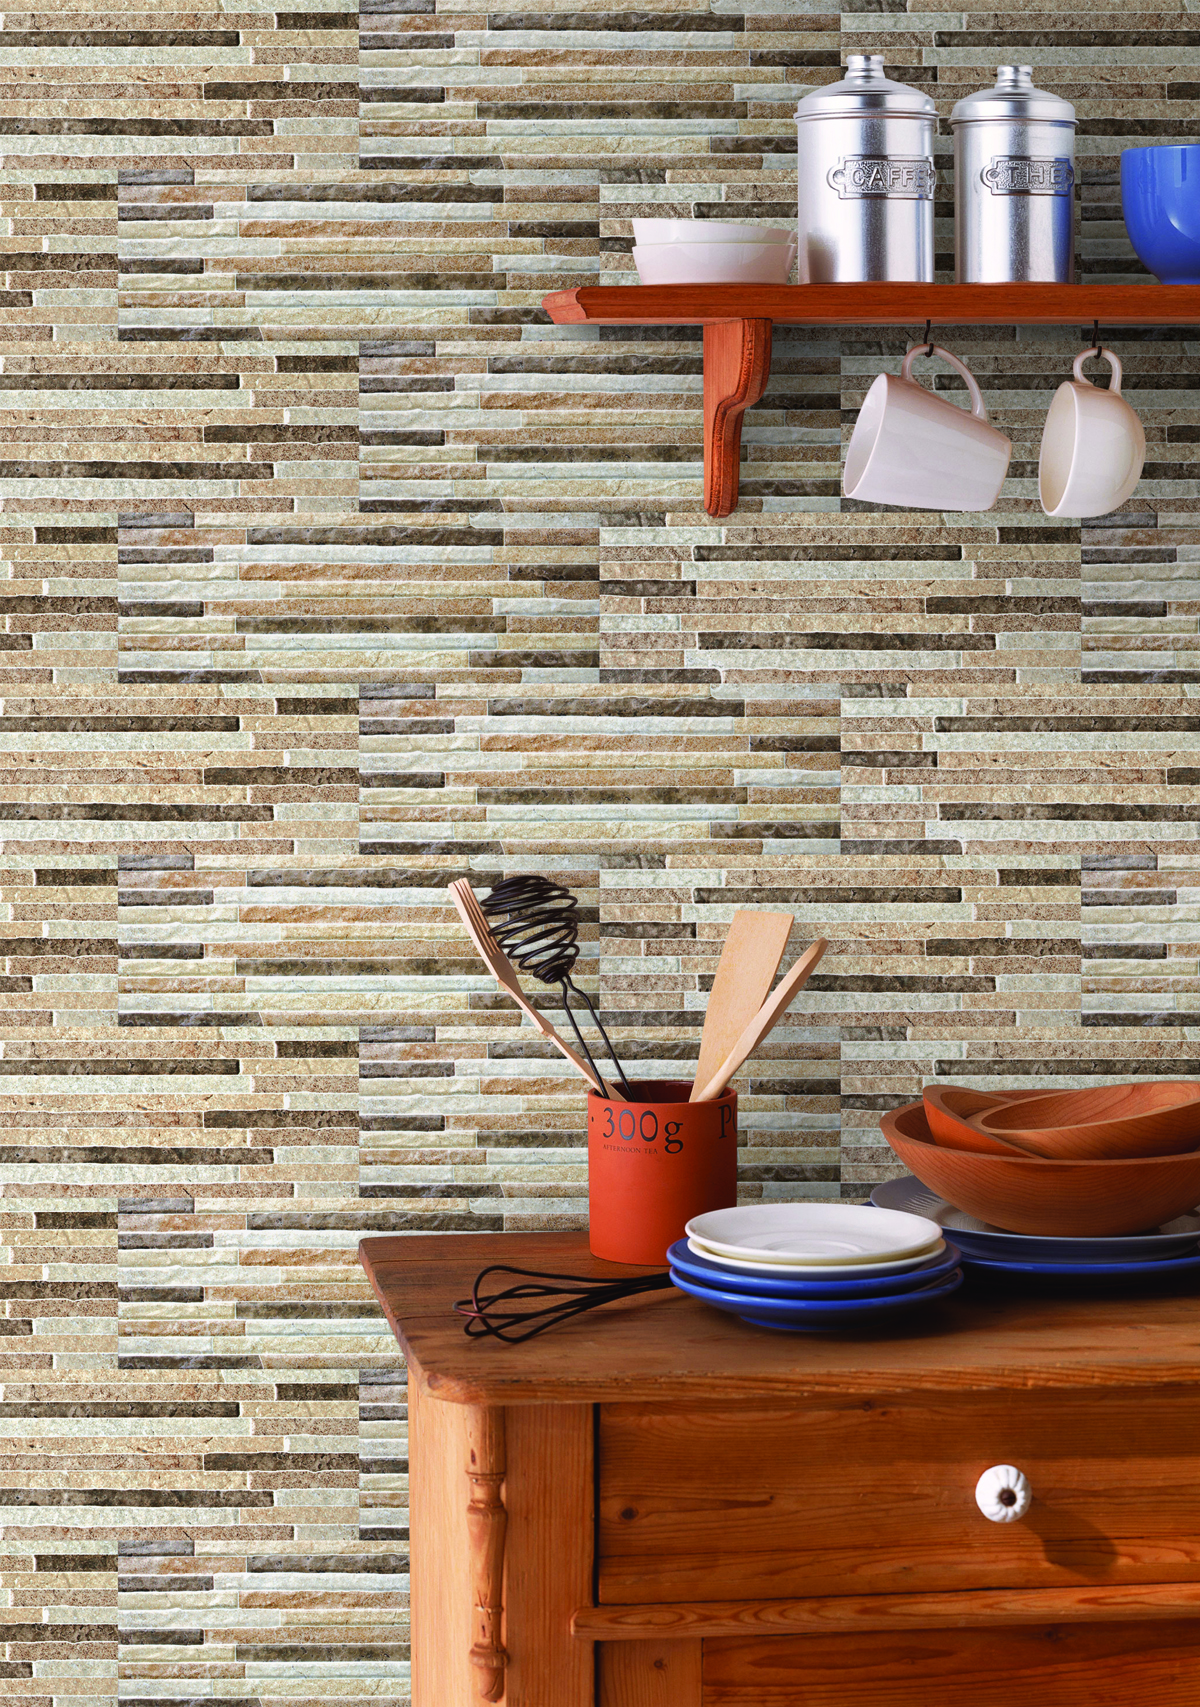 Johnson kitchen wall tiles design - Johnson Launches Stonex Wall Tile Collection Atul Malikram Pr 24